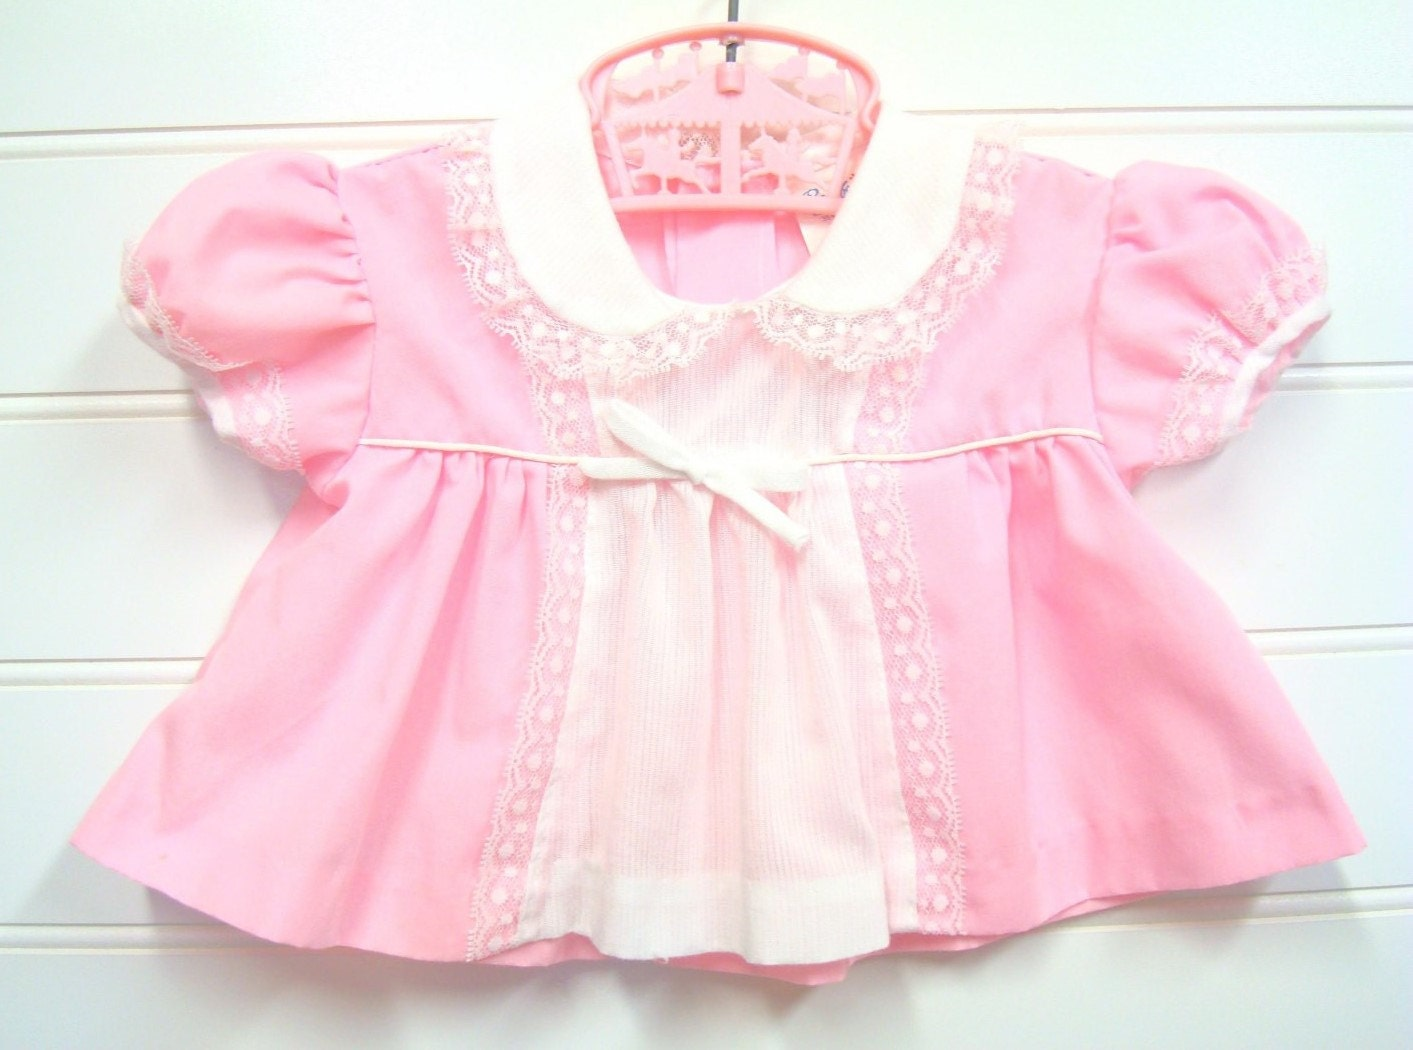 Vintage Baby Clothes Baby Girl Dress In Pink and White With